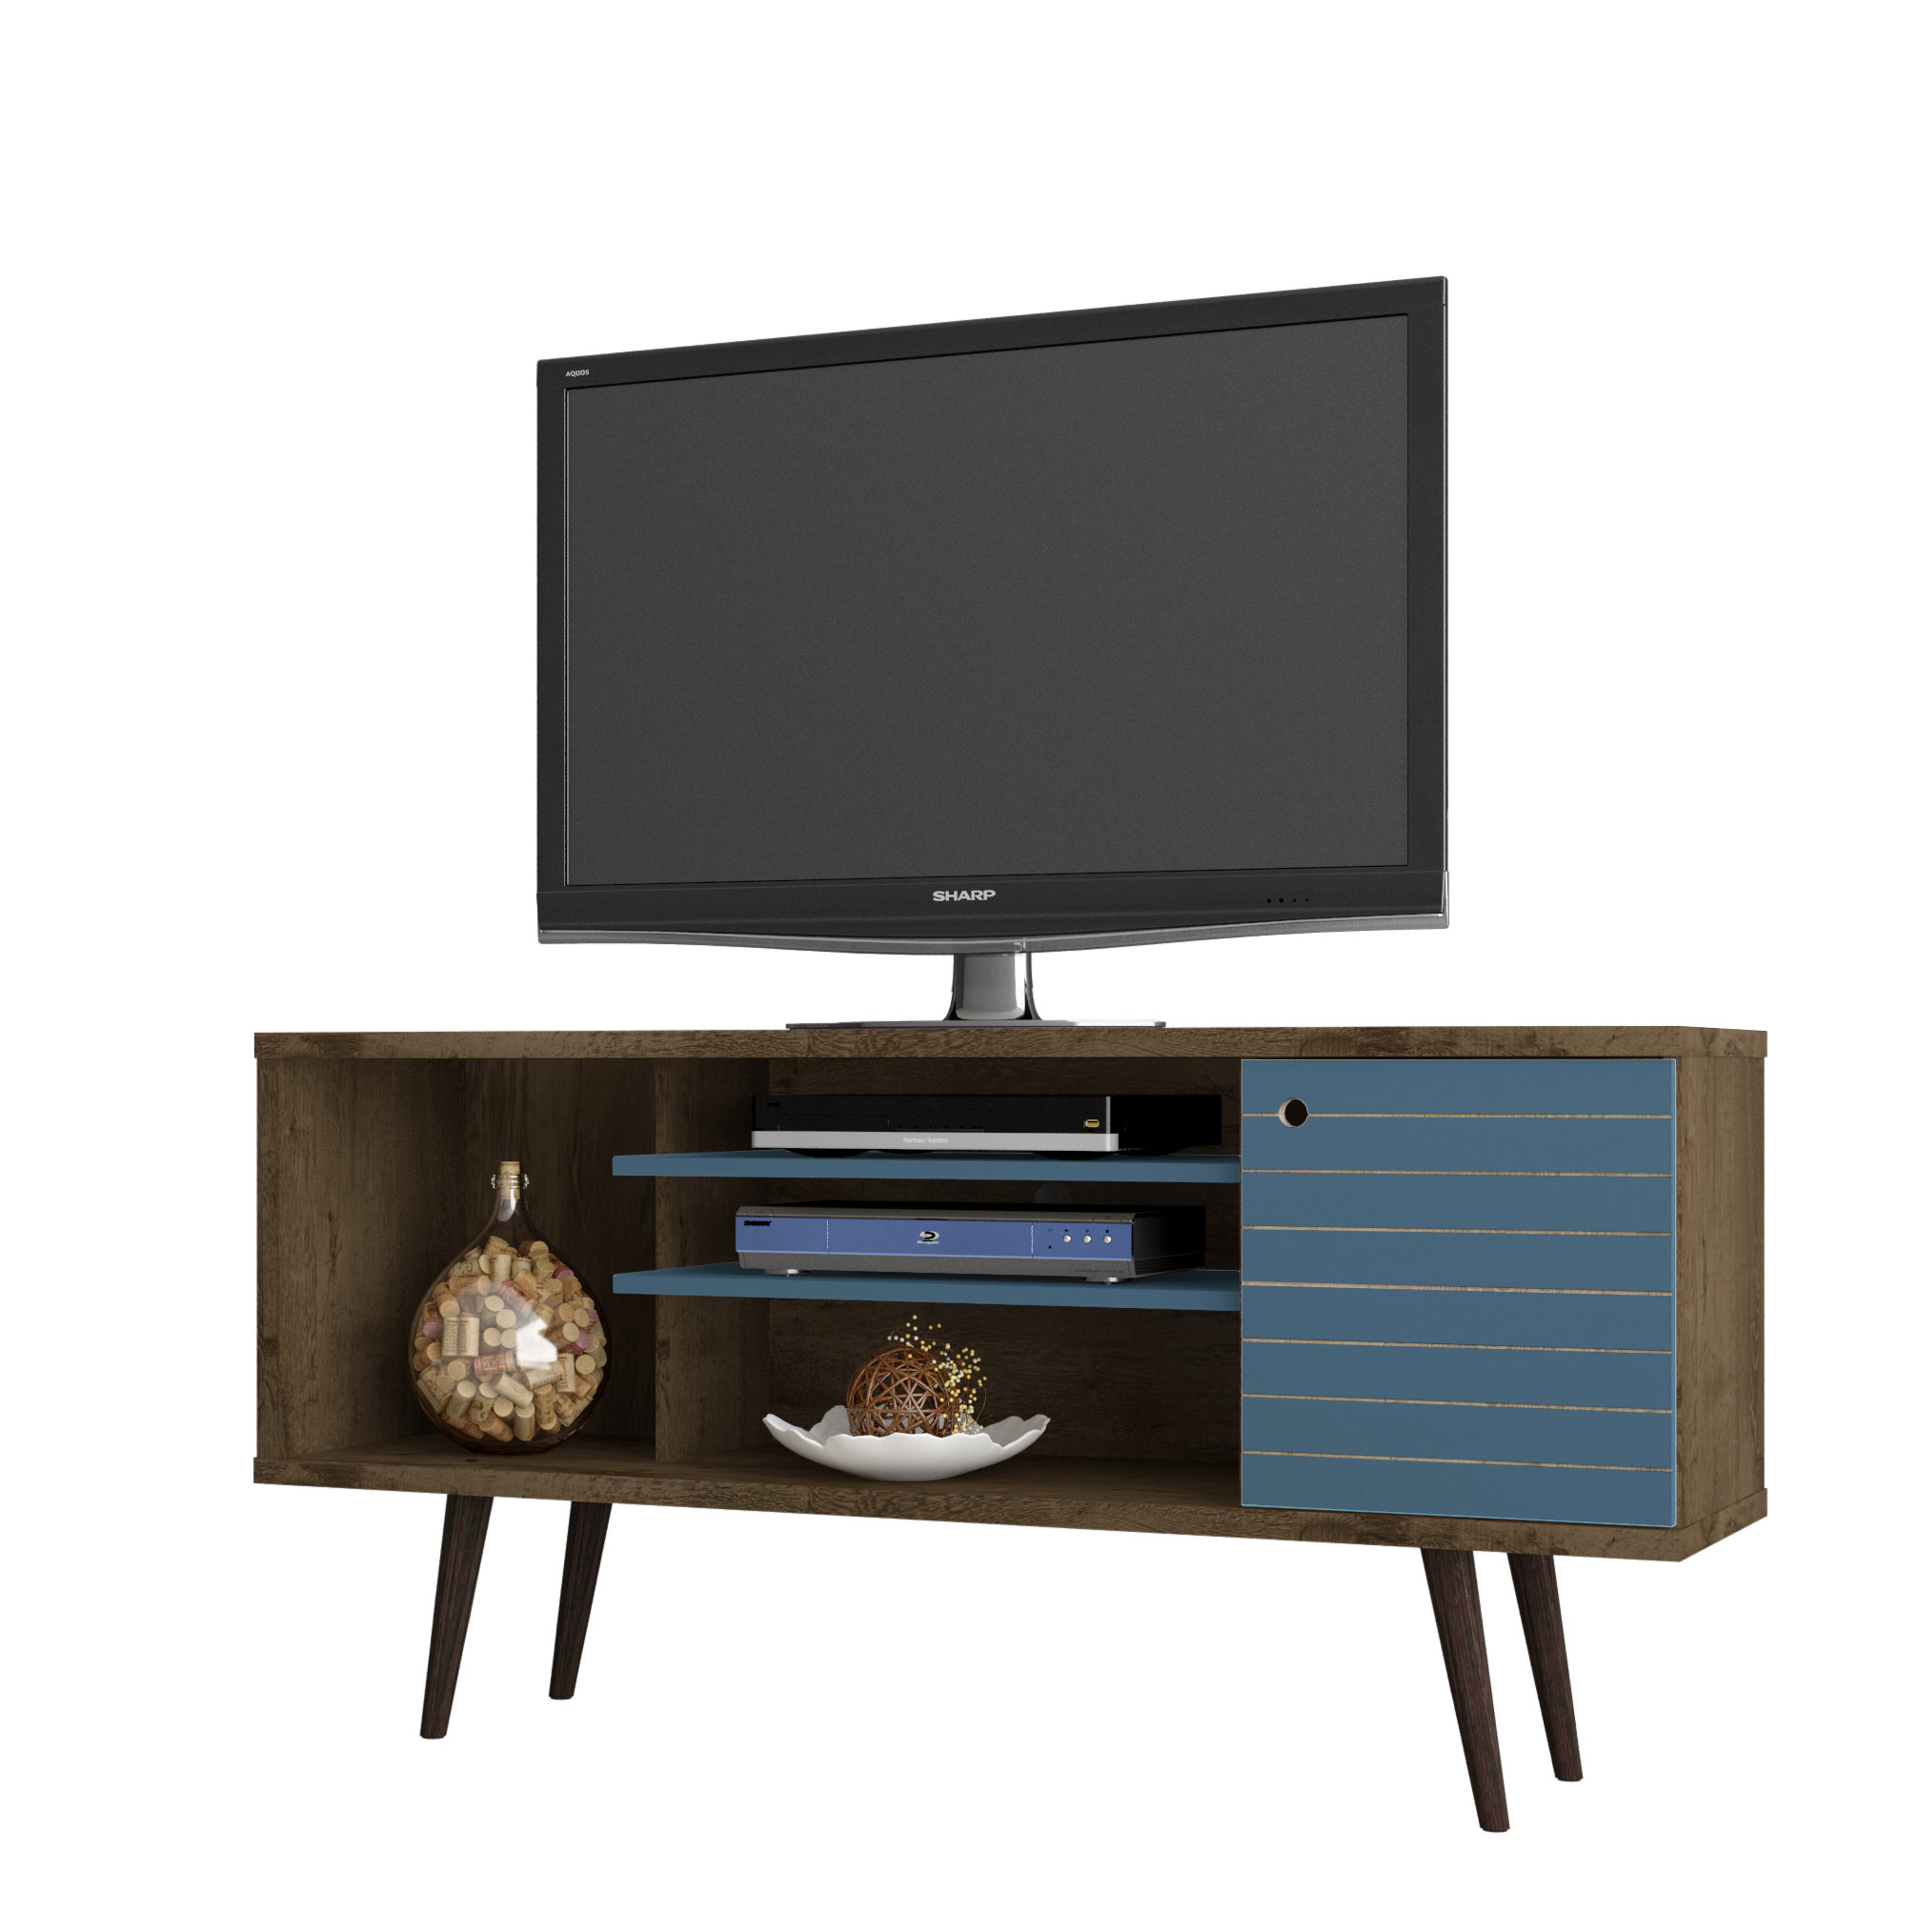 Jabari Tv Stand For Tvs Up To 50'' & Reviews | Joss & Main With Regard To Century Blue 60 Inch Tv Stands (View 9 of 30)